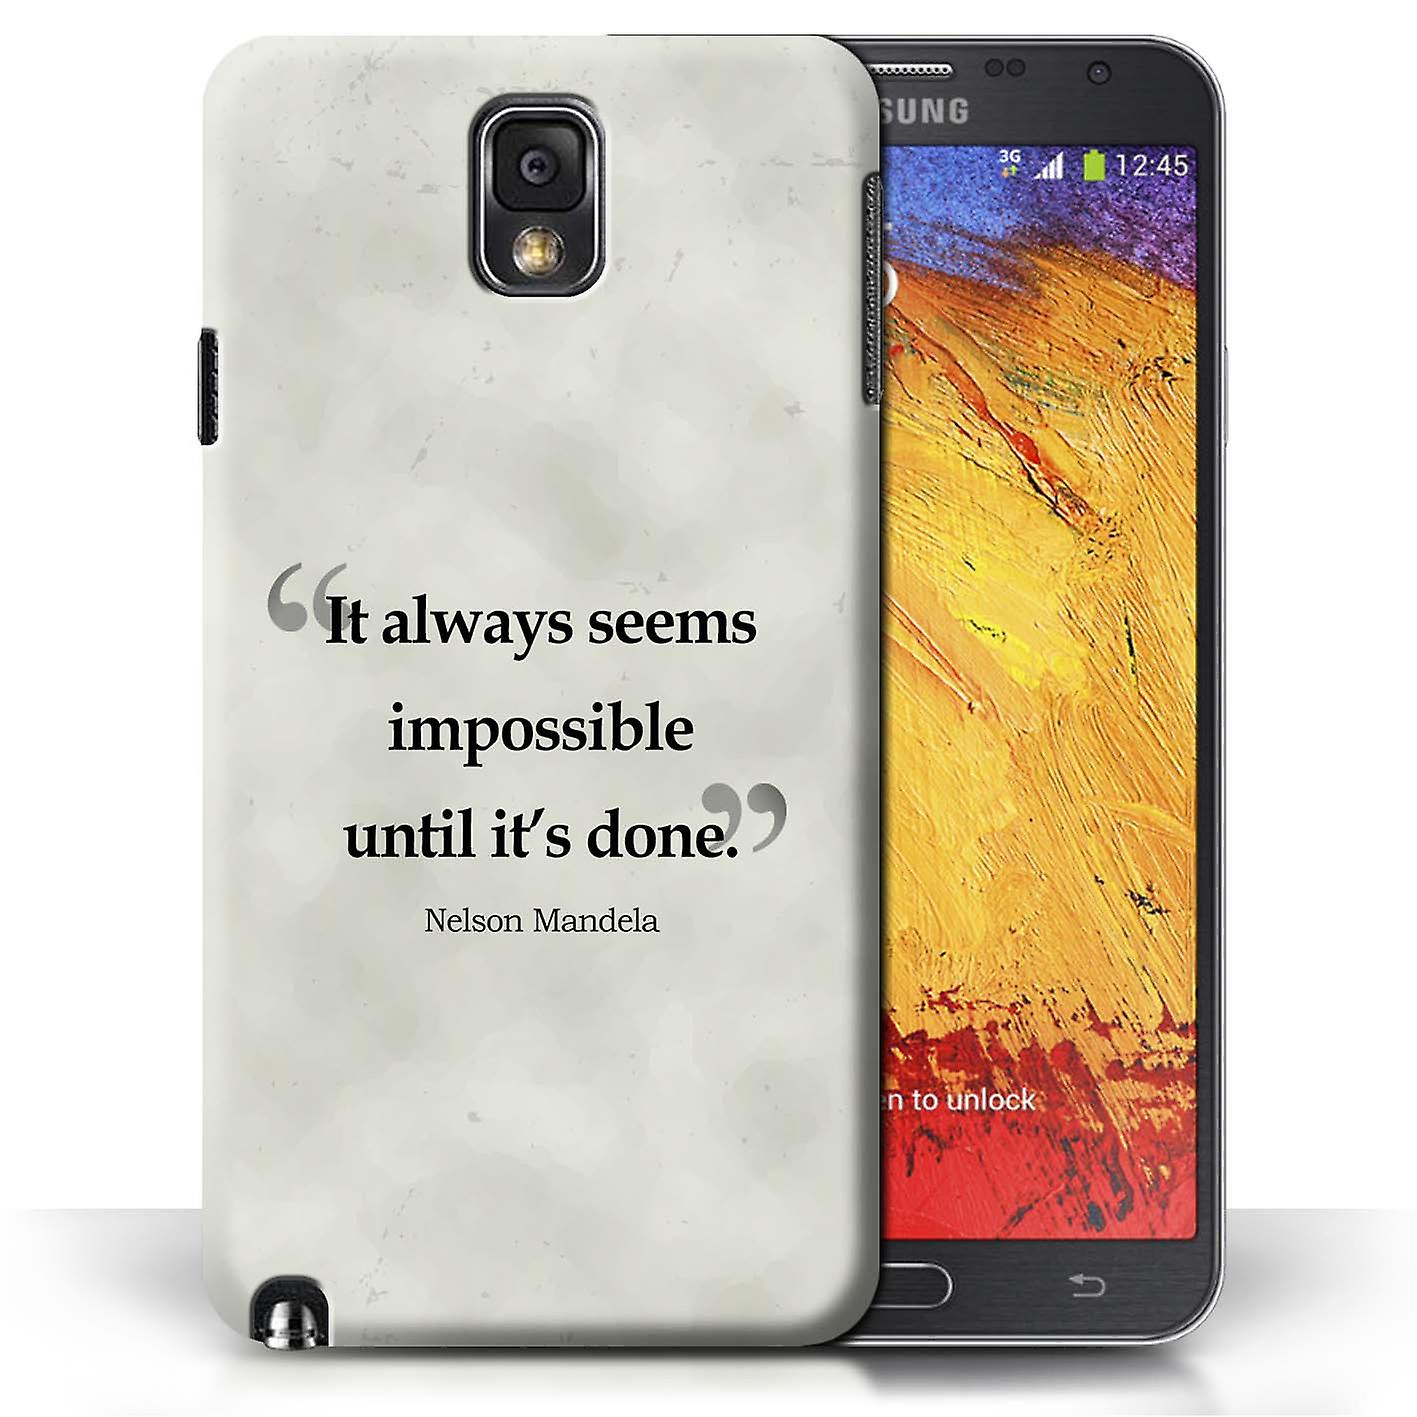 hot sale online 0300f 43e5e STUFF4 Phone Case/Cover for Samsung Galaxy Note 3 / Nelson Mandela Design /  Famous Quotes Collection